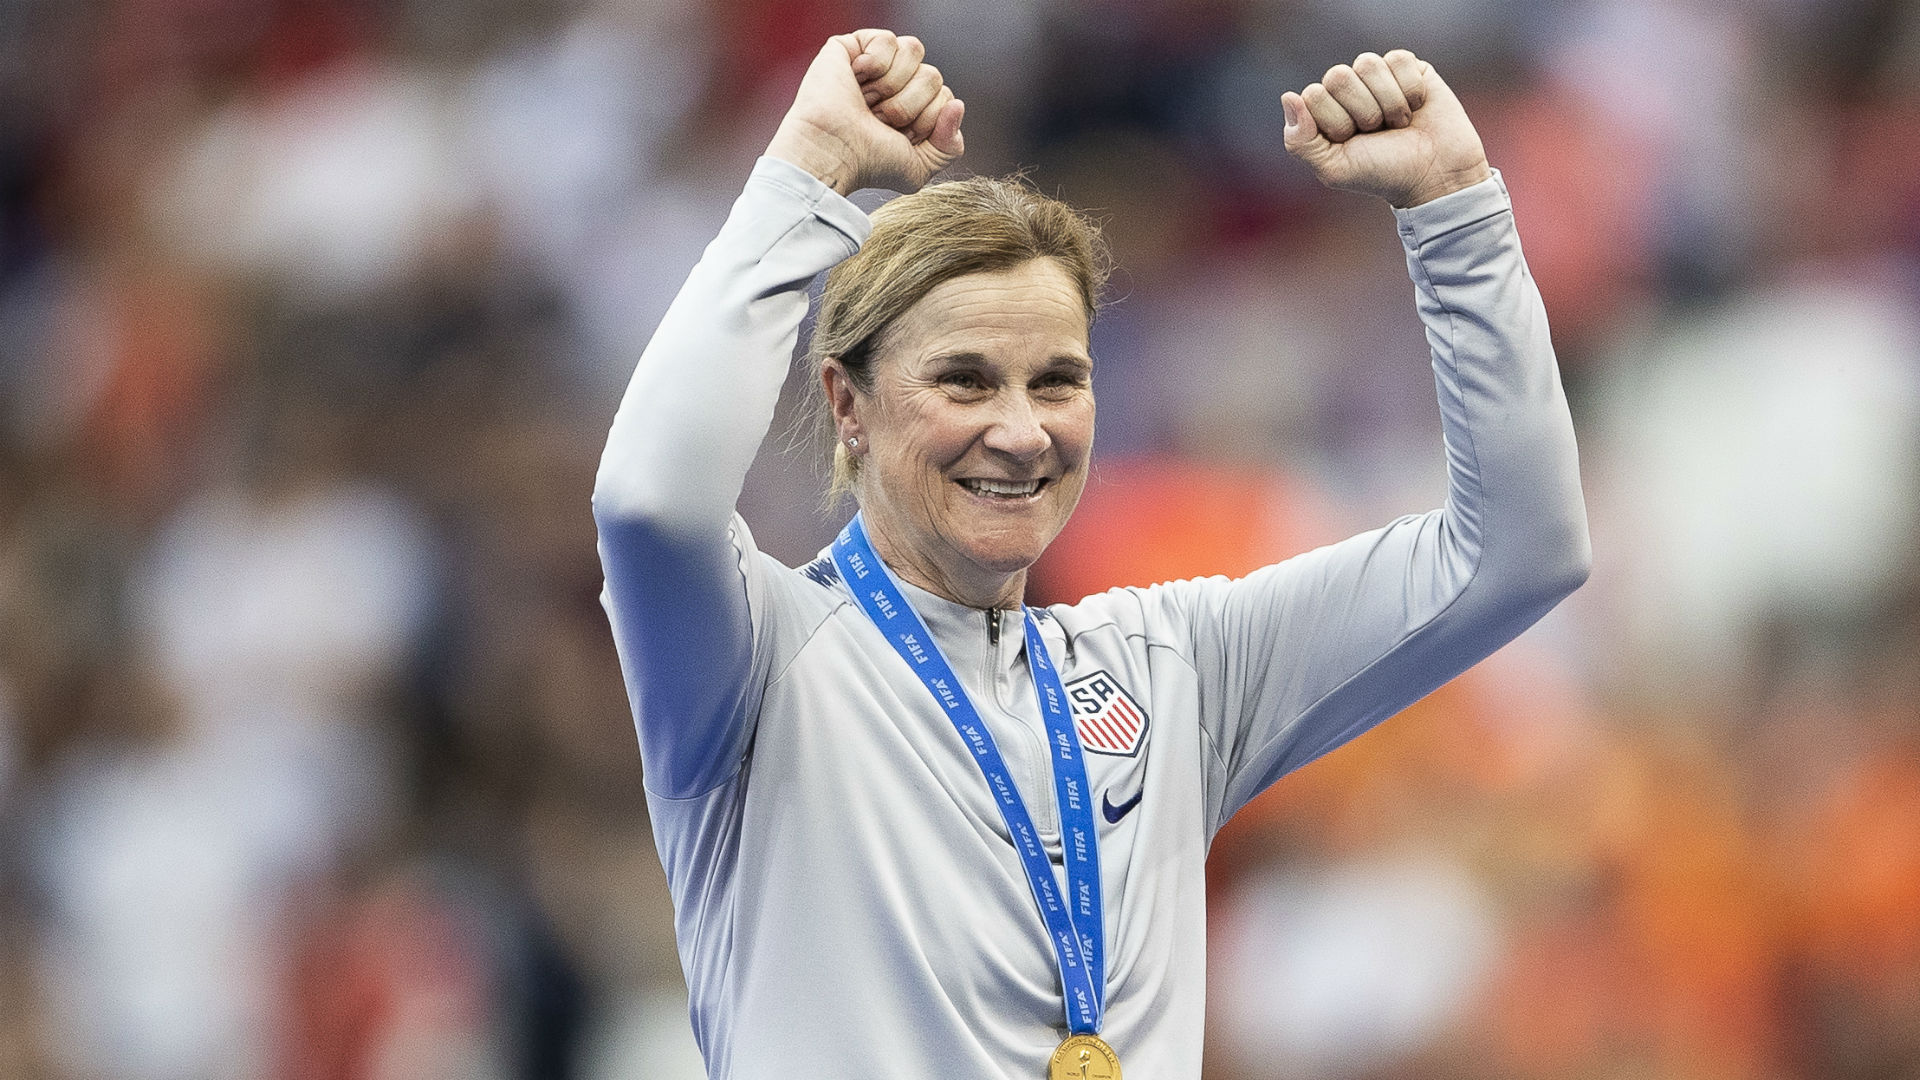 Give USWNT coach Jill Ellis credit for these six bold moves that shut down her critics